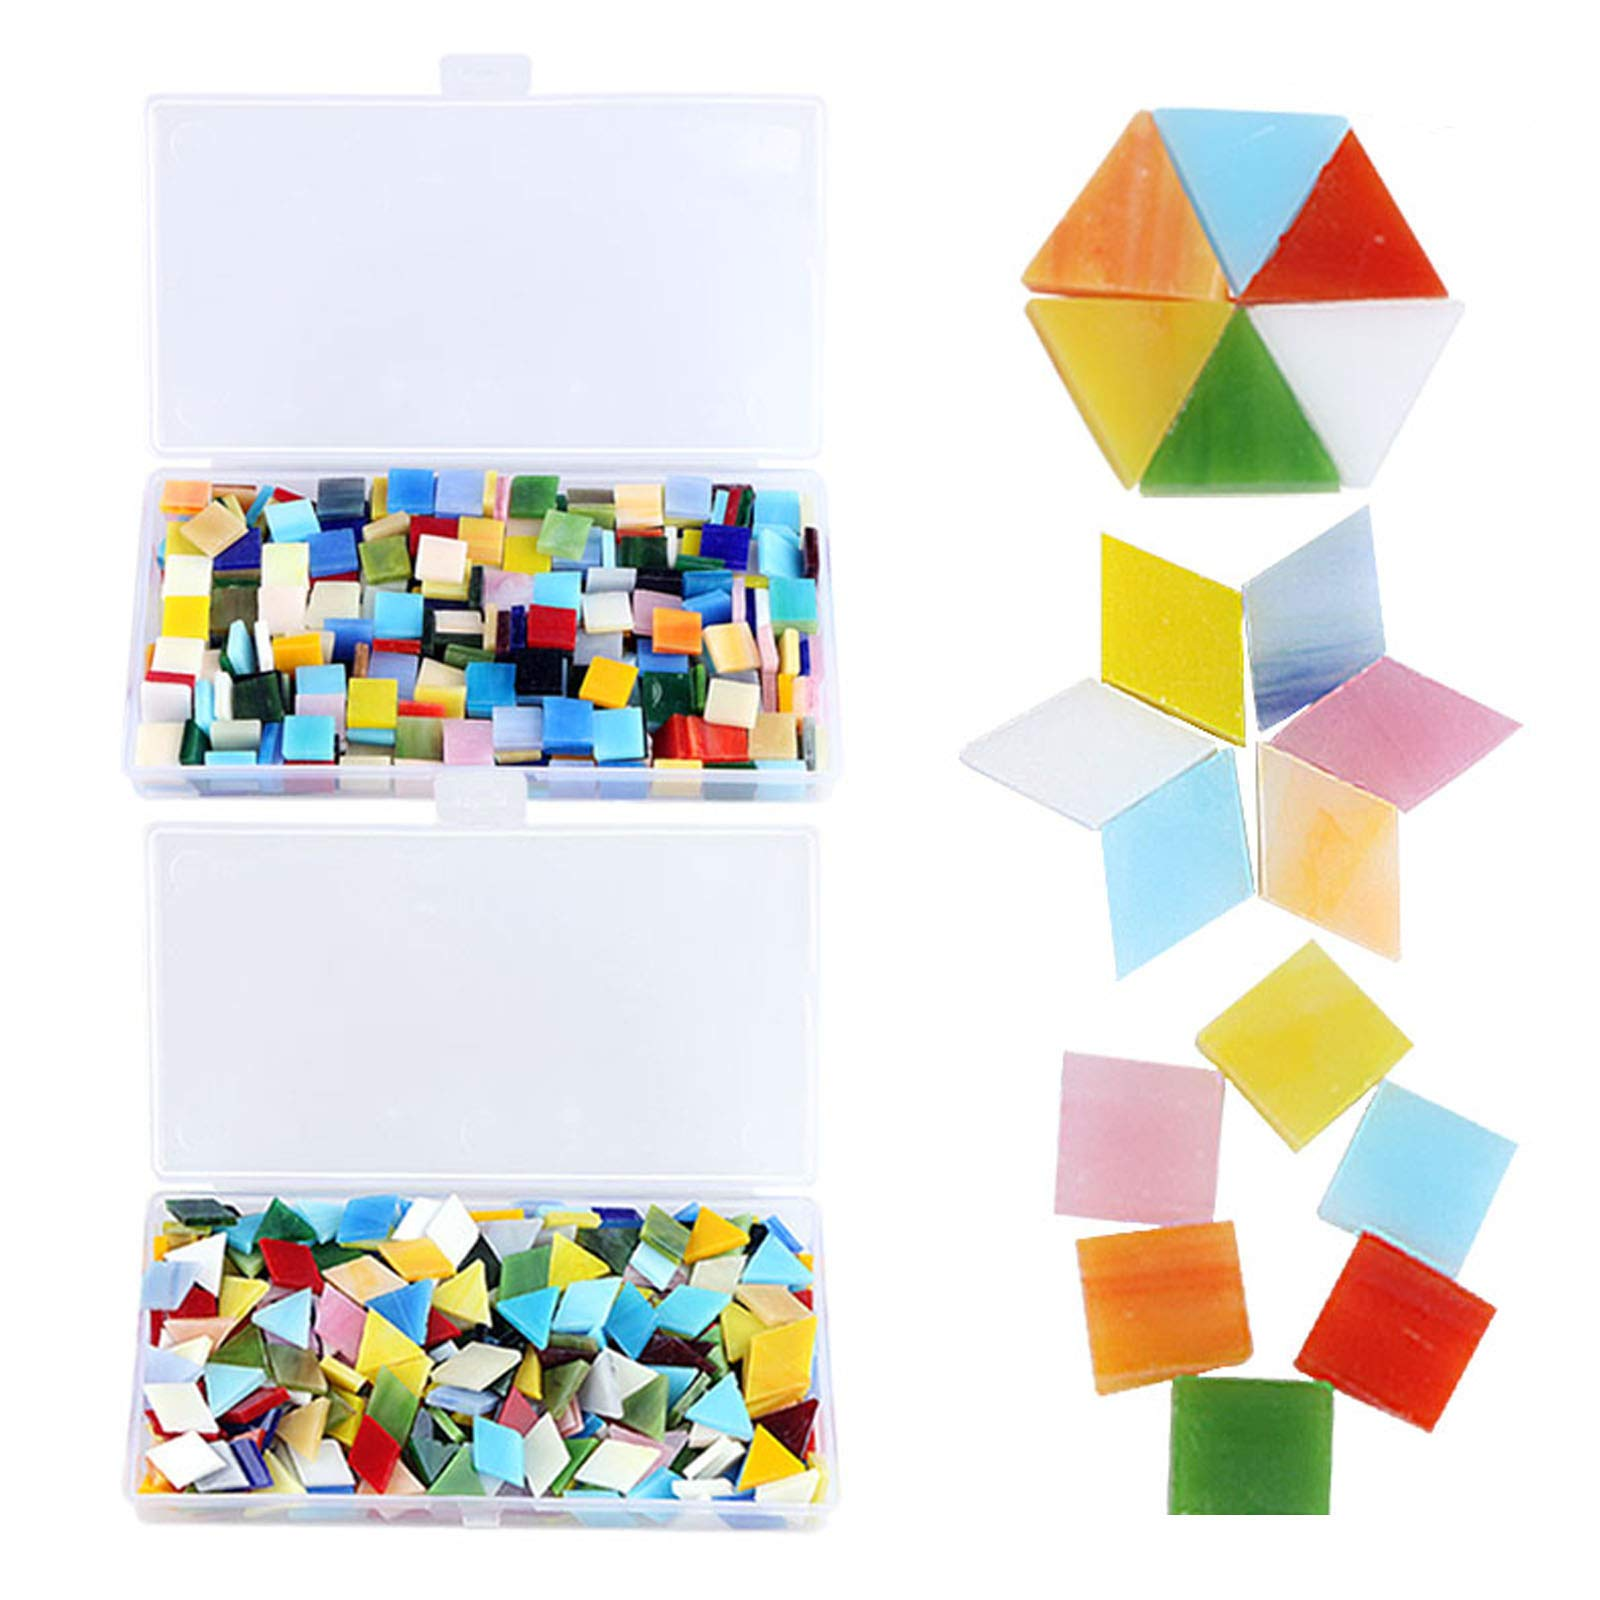 800 Pieces Mixed Color Mosaic Tiles Mosaic Glass Pieces with Organizing Container for Home Decoration or DIY Crafts, Square,Triangle, rhombus, Aunifun by Aunifun